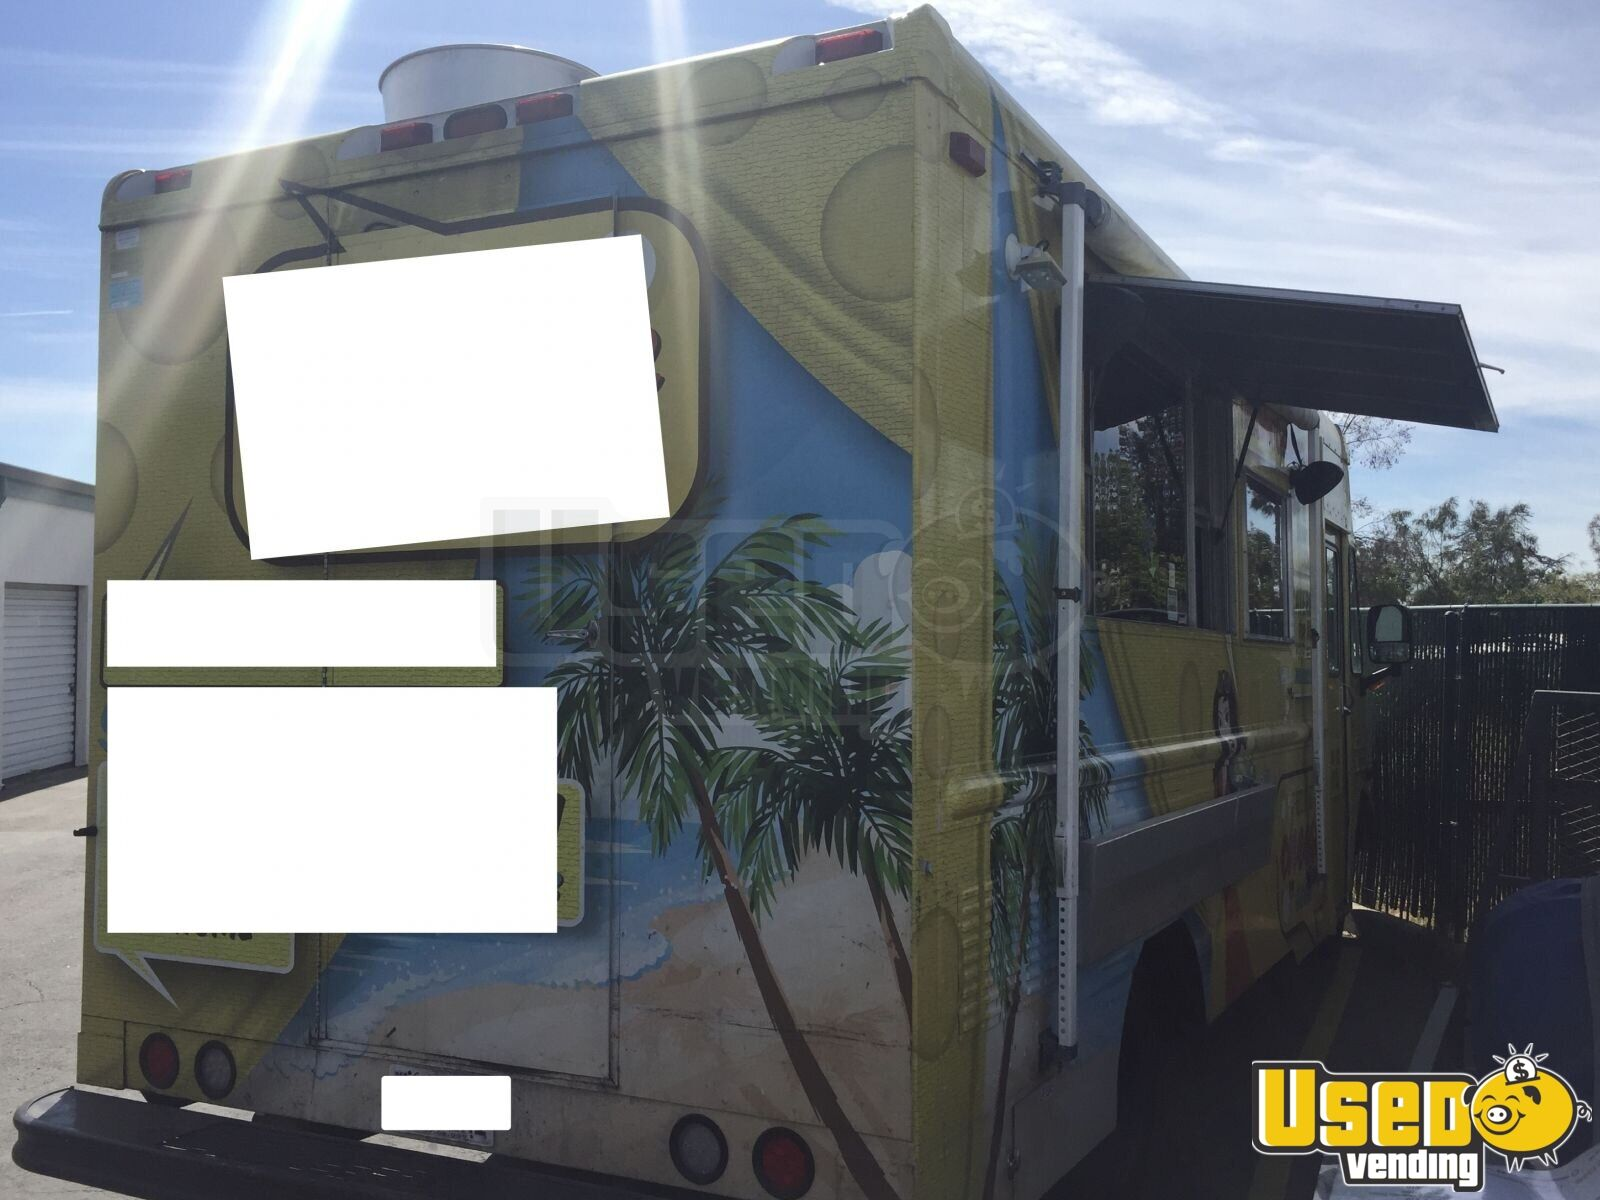 2004 Workhorse. Gmc All-purpose Food Truck Awning California Gas Engine for Sale - 6